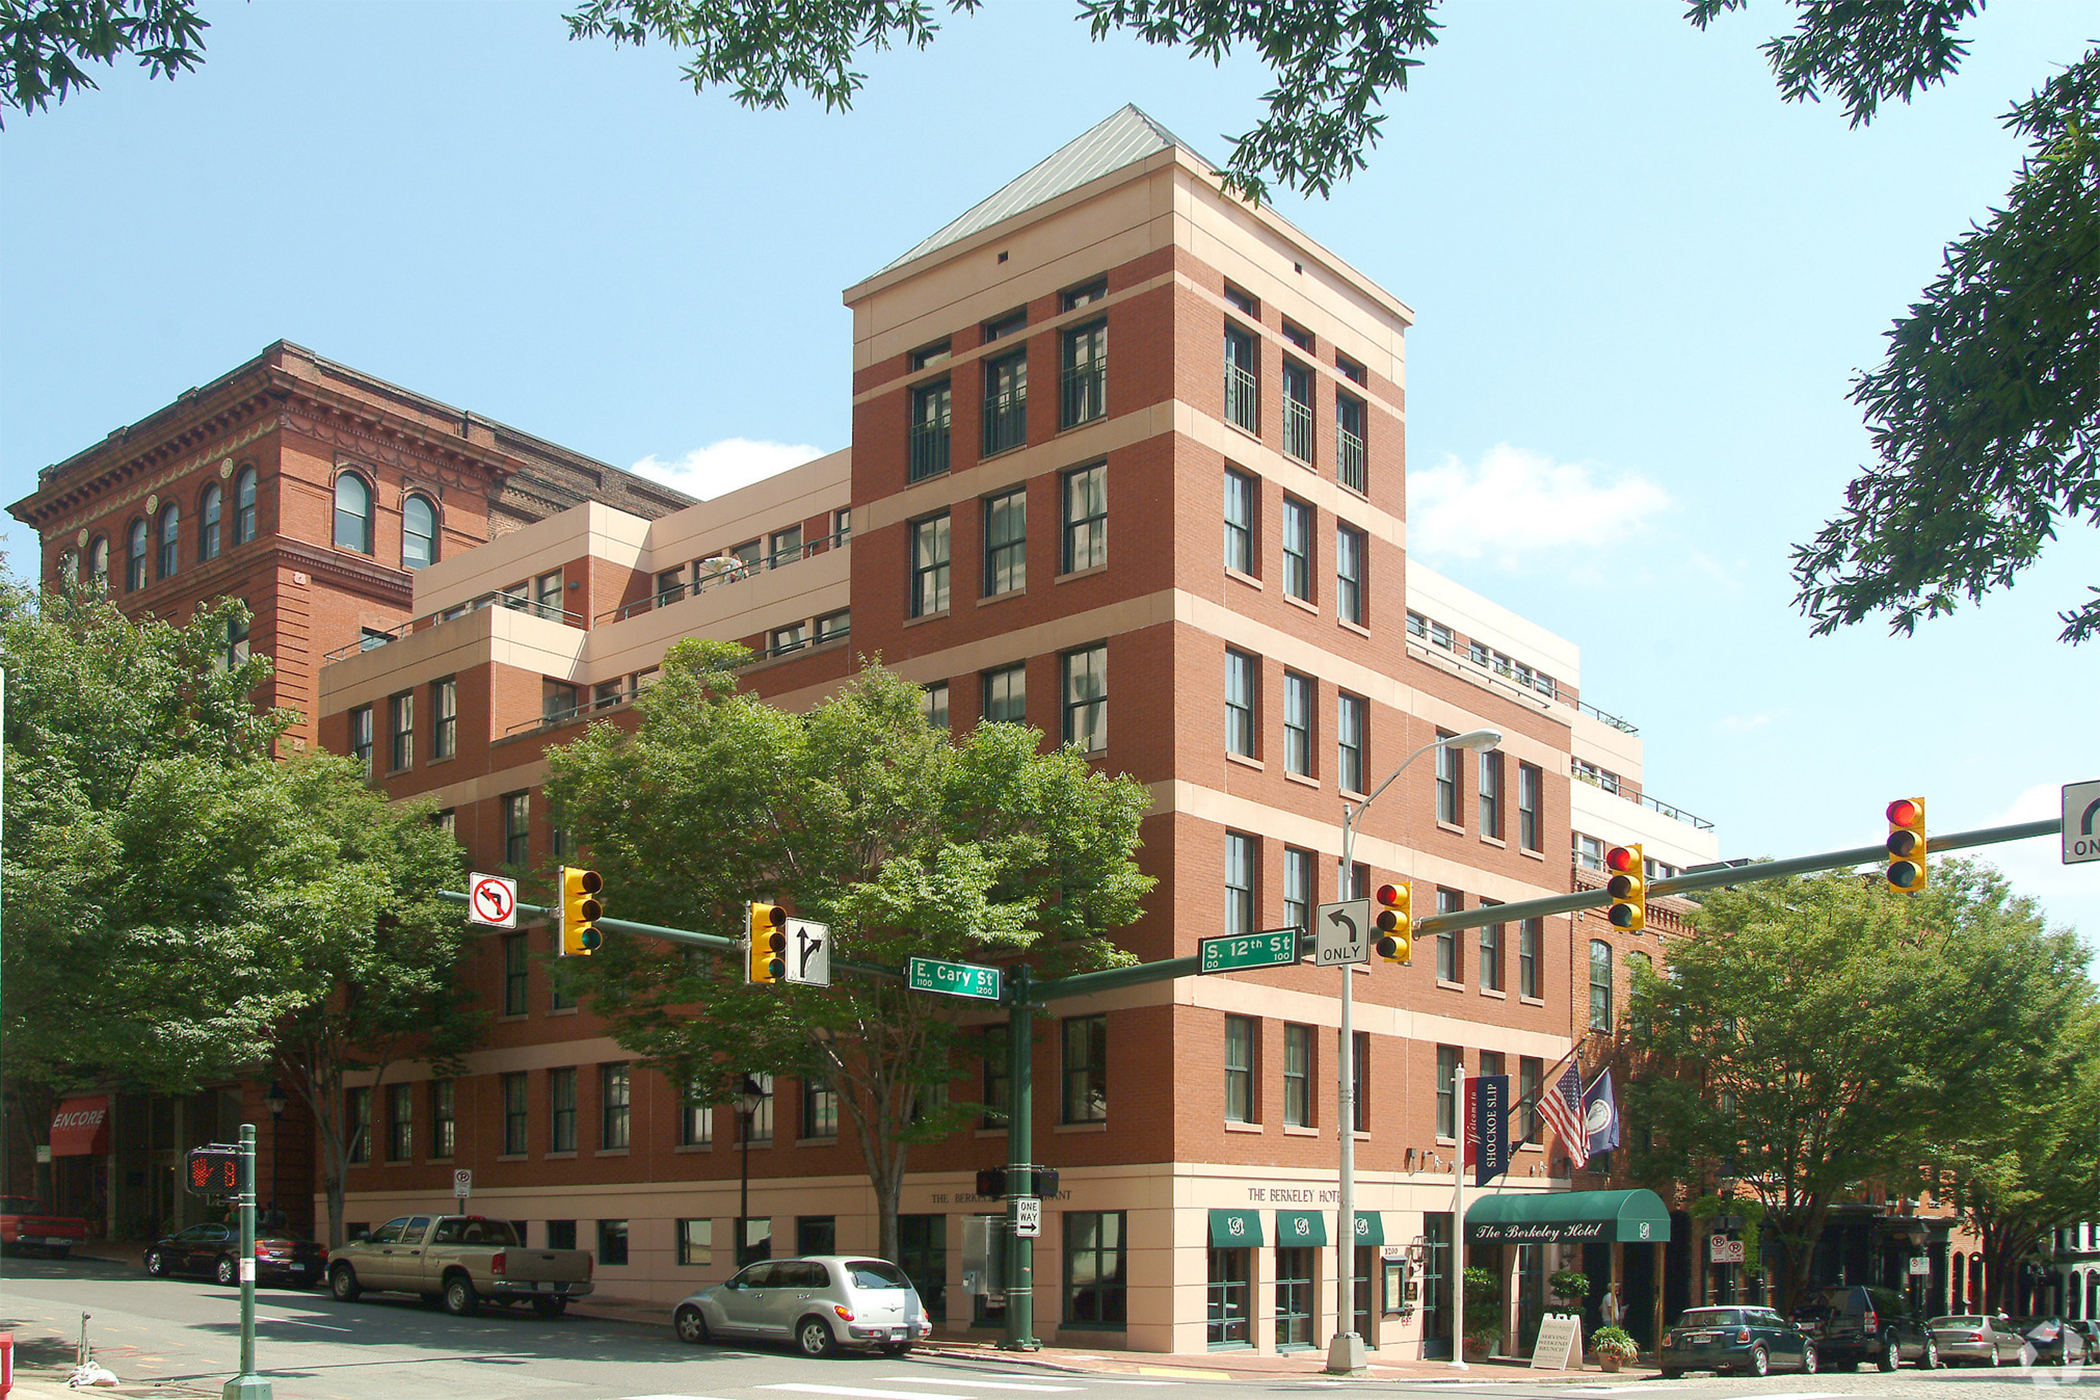 Berkeley Hotel in Richmond, Virginia, is one of the properties Apple Hospitality is rumored to have bought. (CoStar)